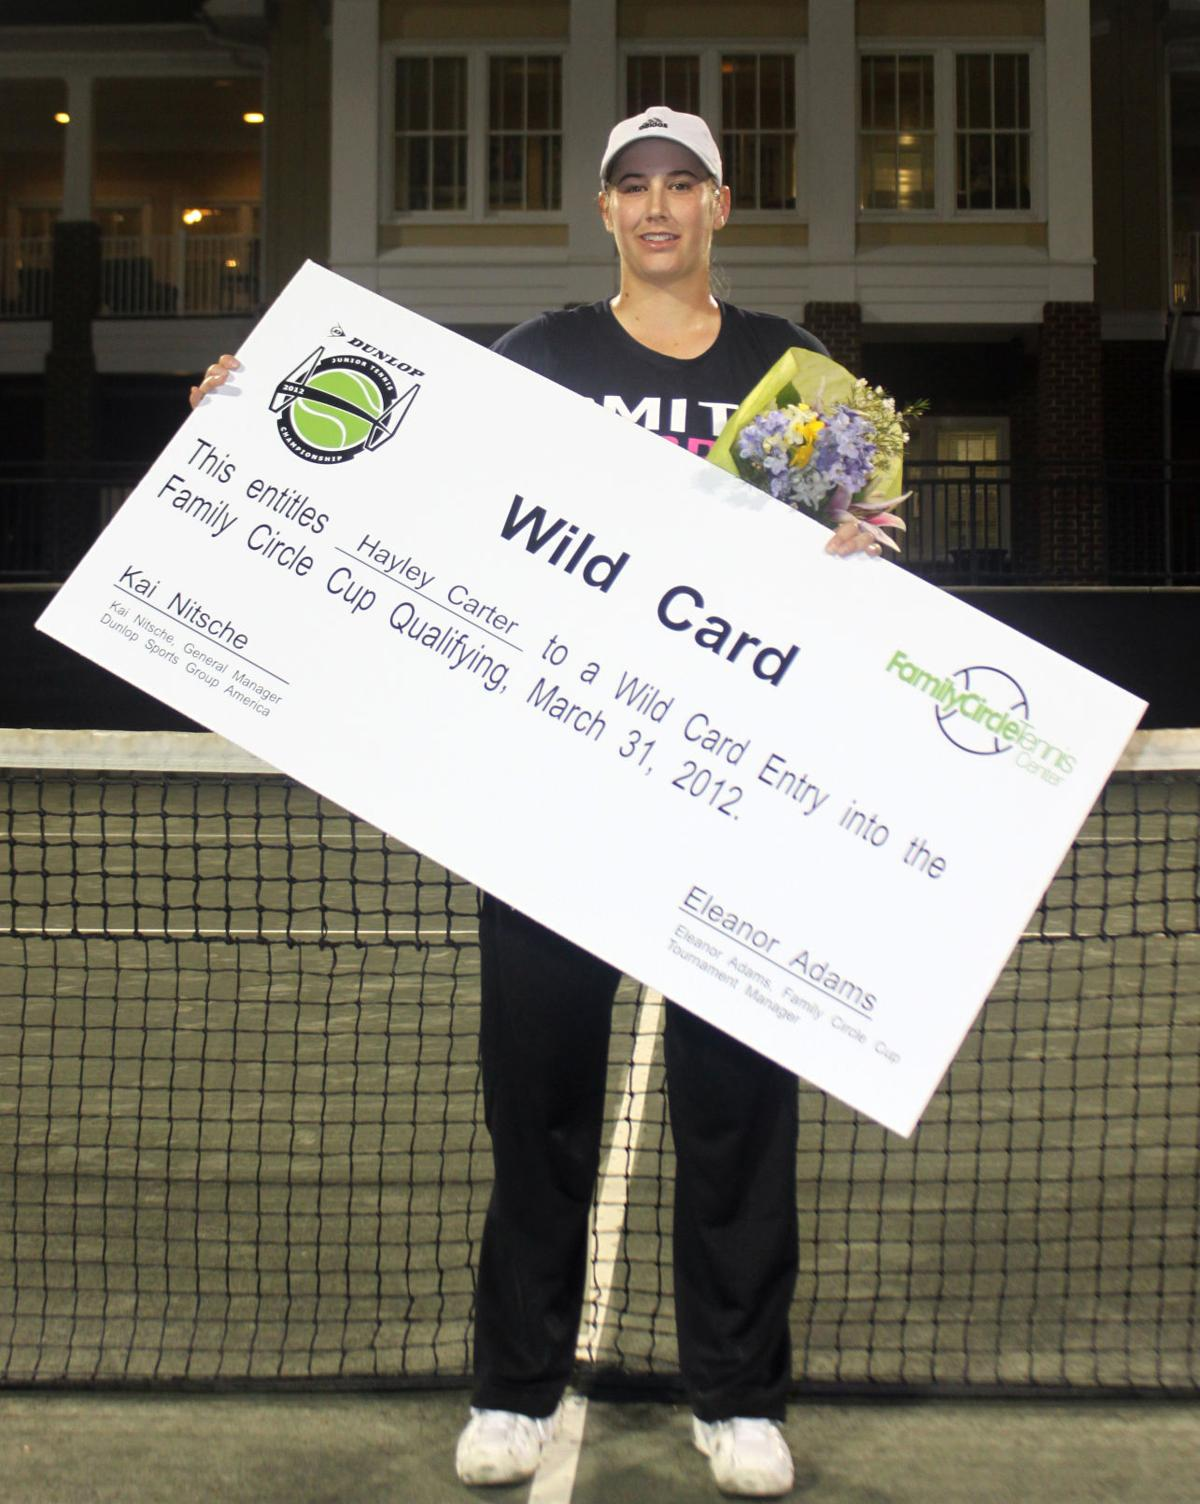 Columbia native earns Family Circle Cup wild card